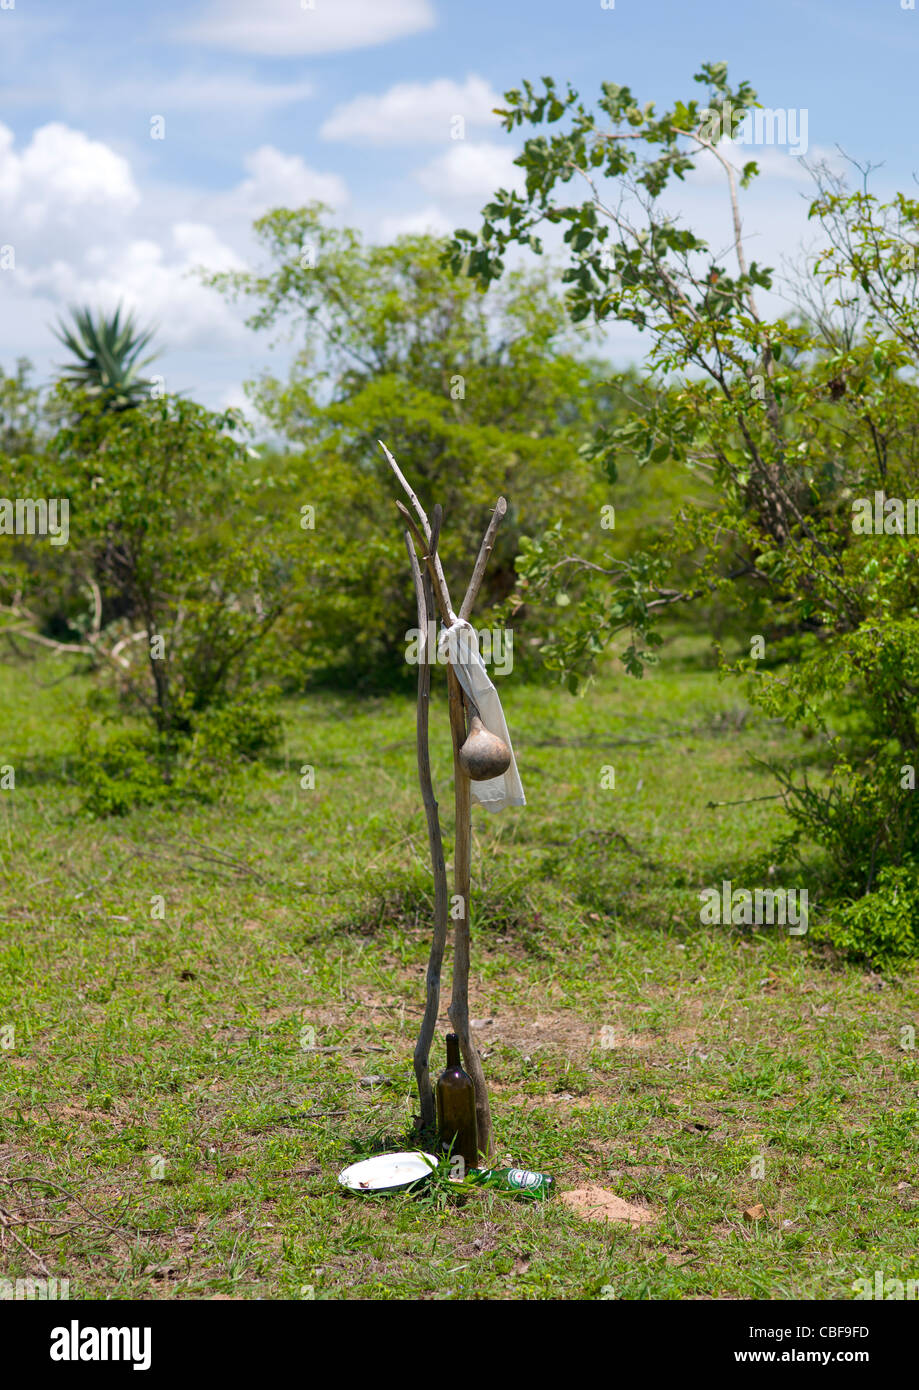 Mwila Grave Decorated With A Calabash, Angola - Stock Image